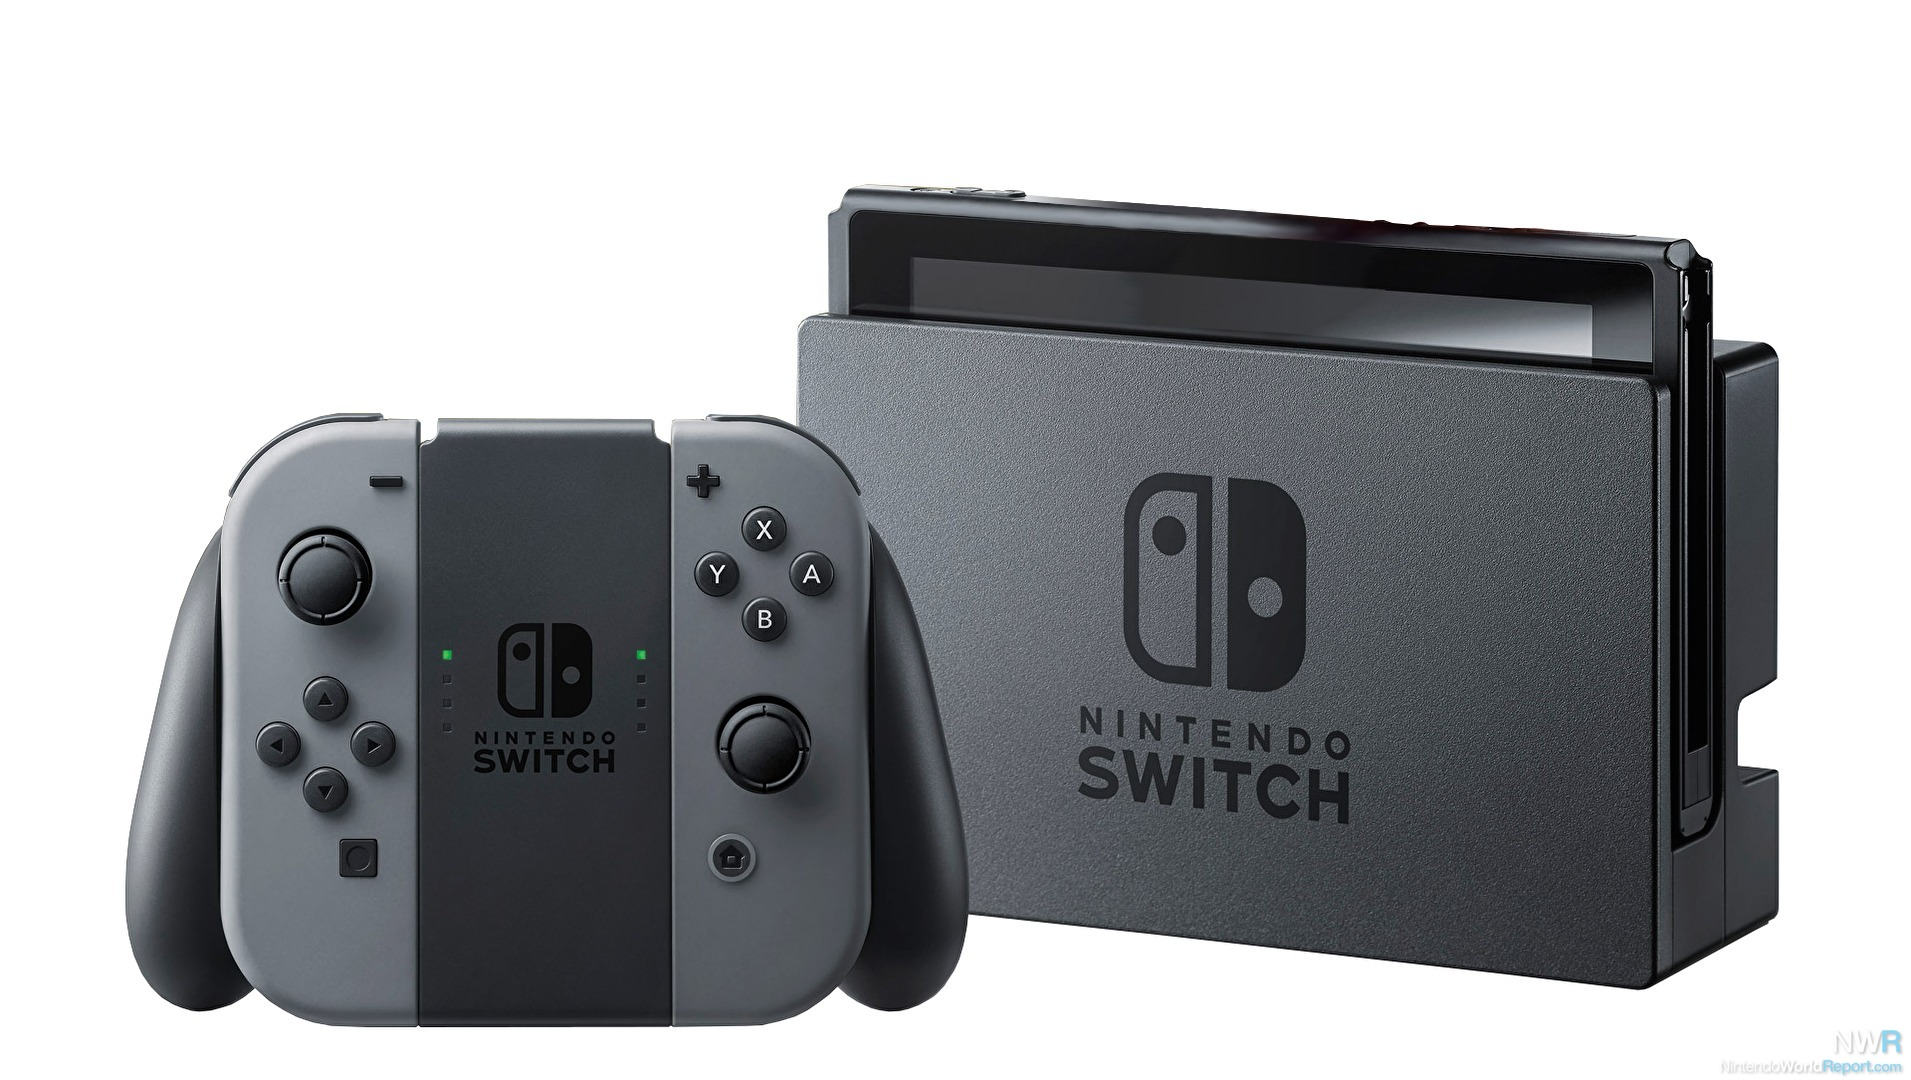 Nintendo Switch Surpasses GameCube Lifetime Sales